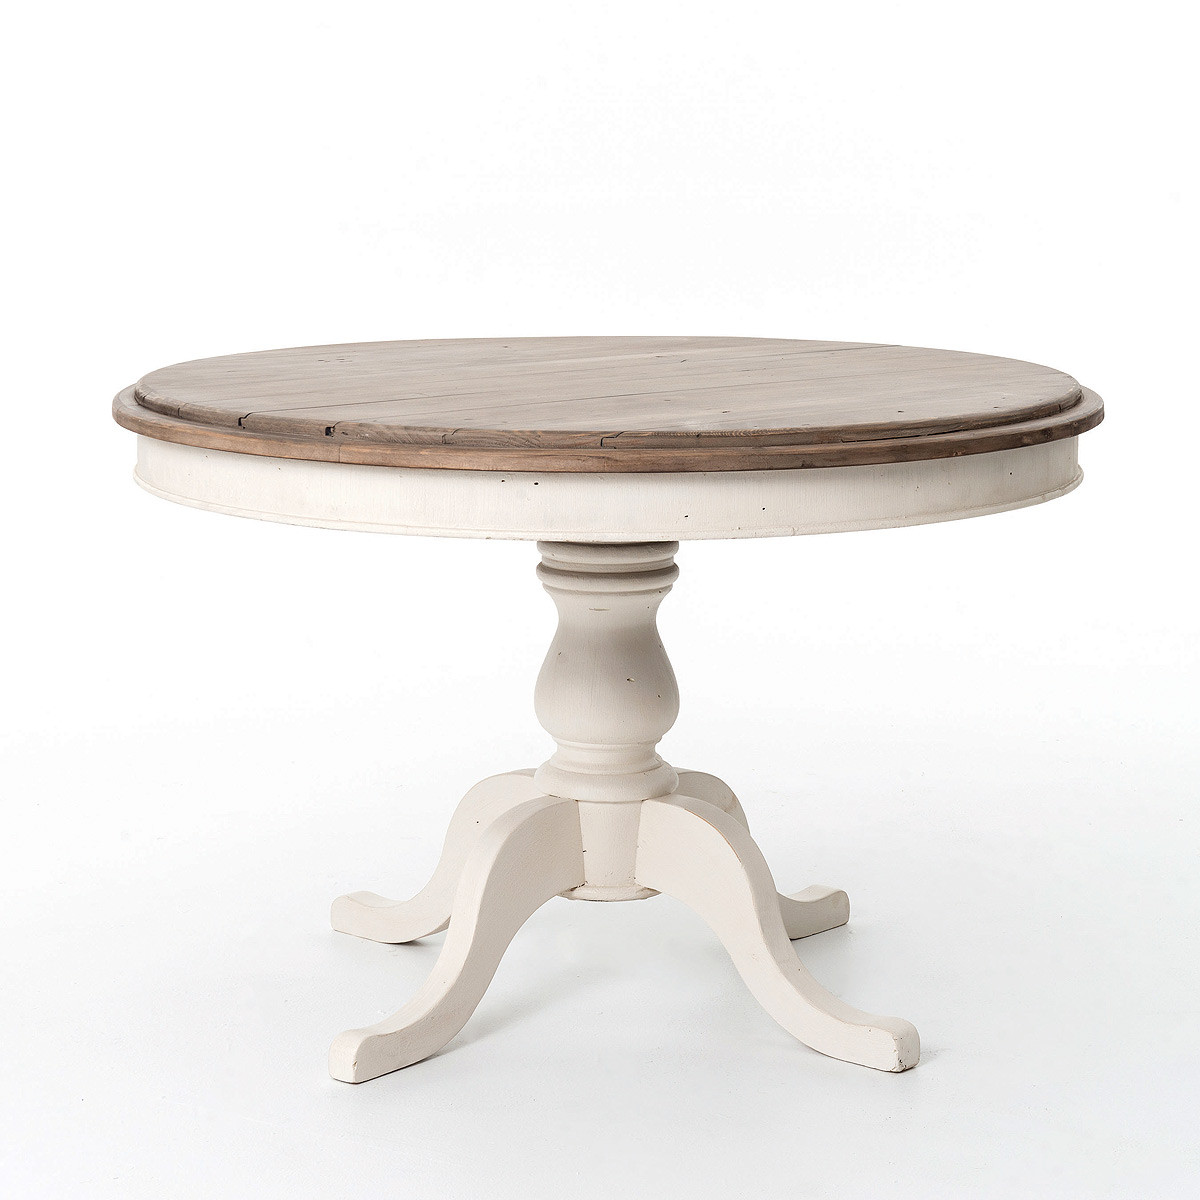 Cottage Round Pedestal White Kitchen Table 47 Zin Home